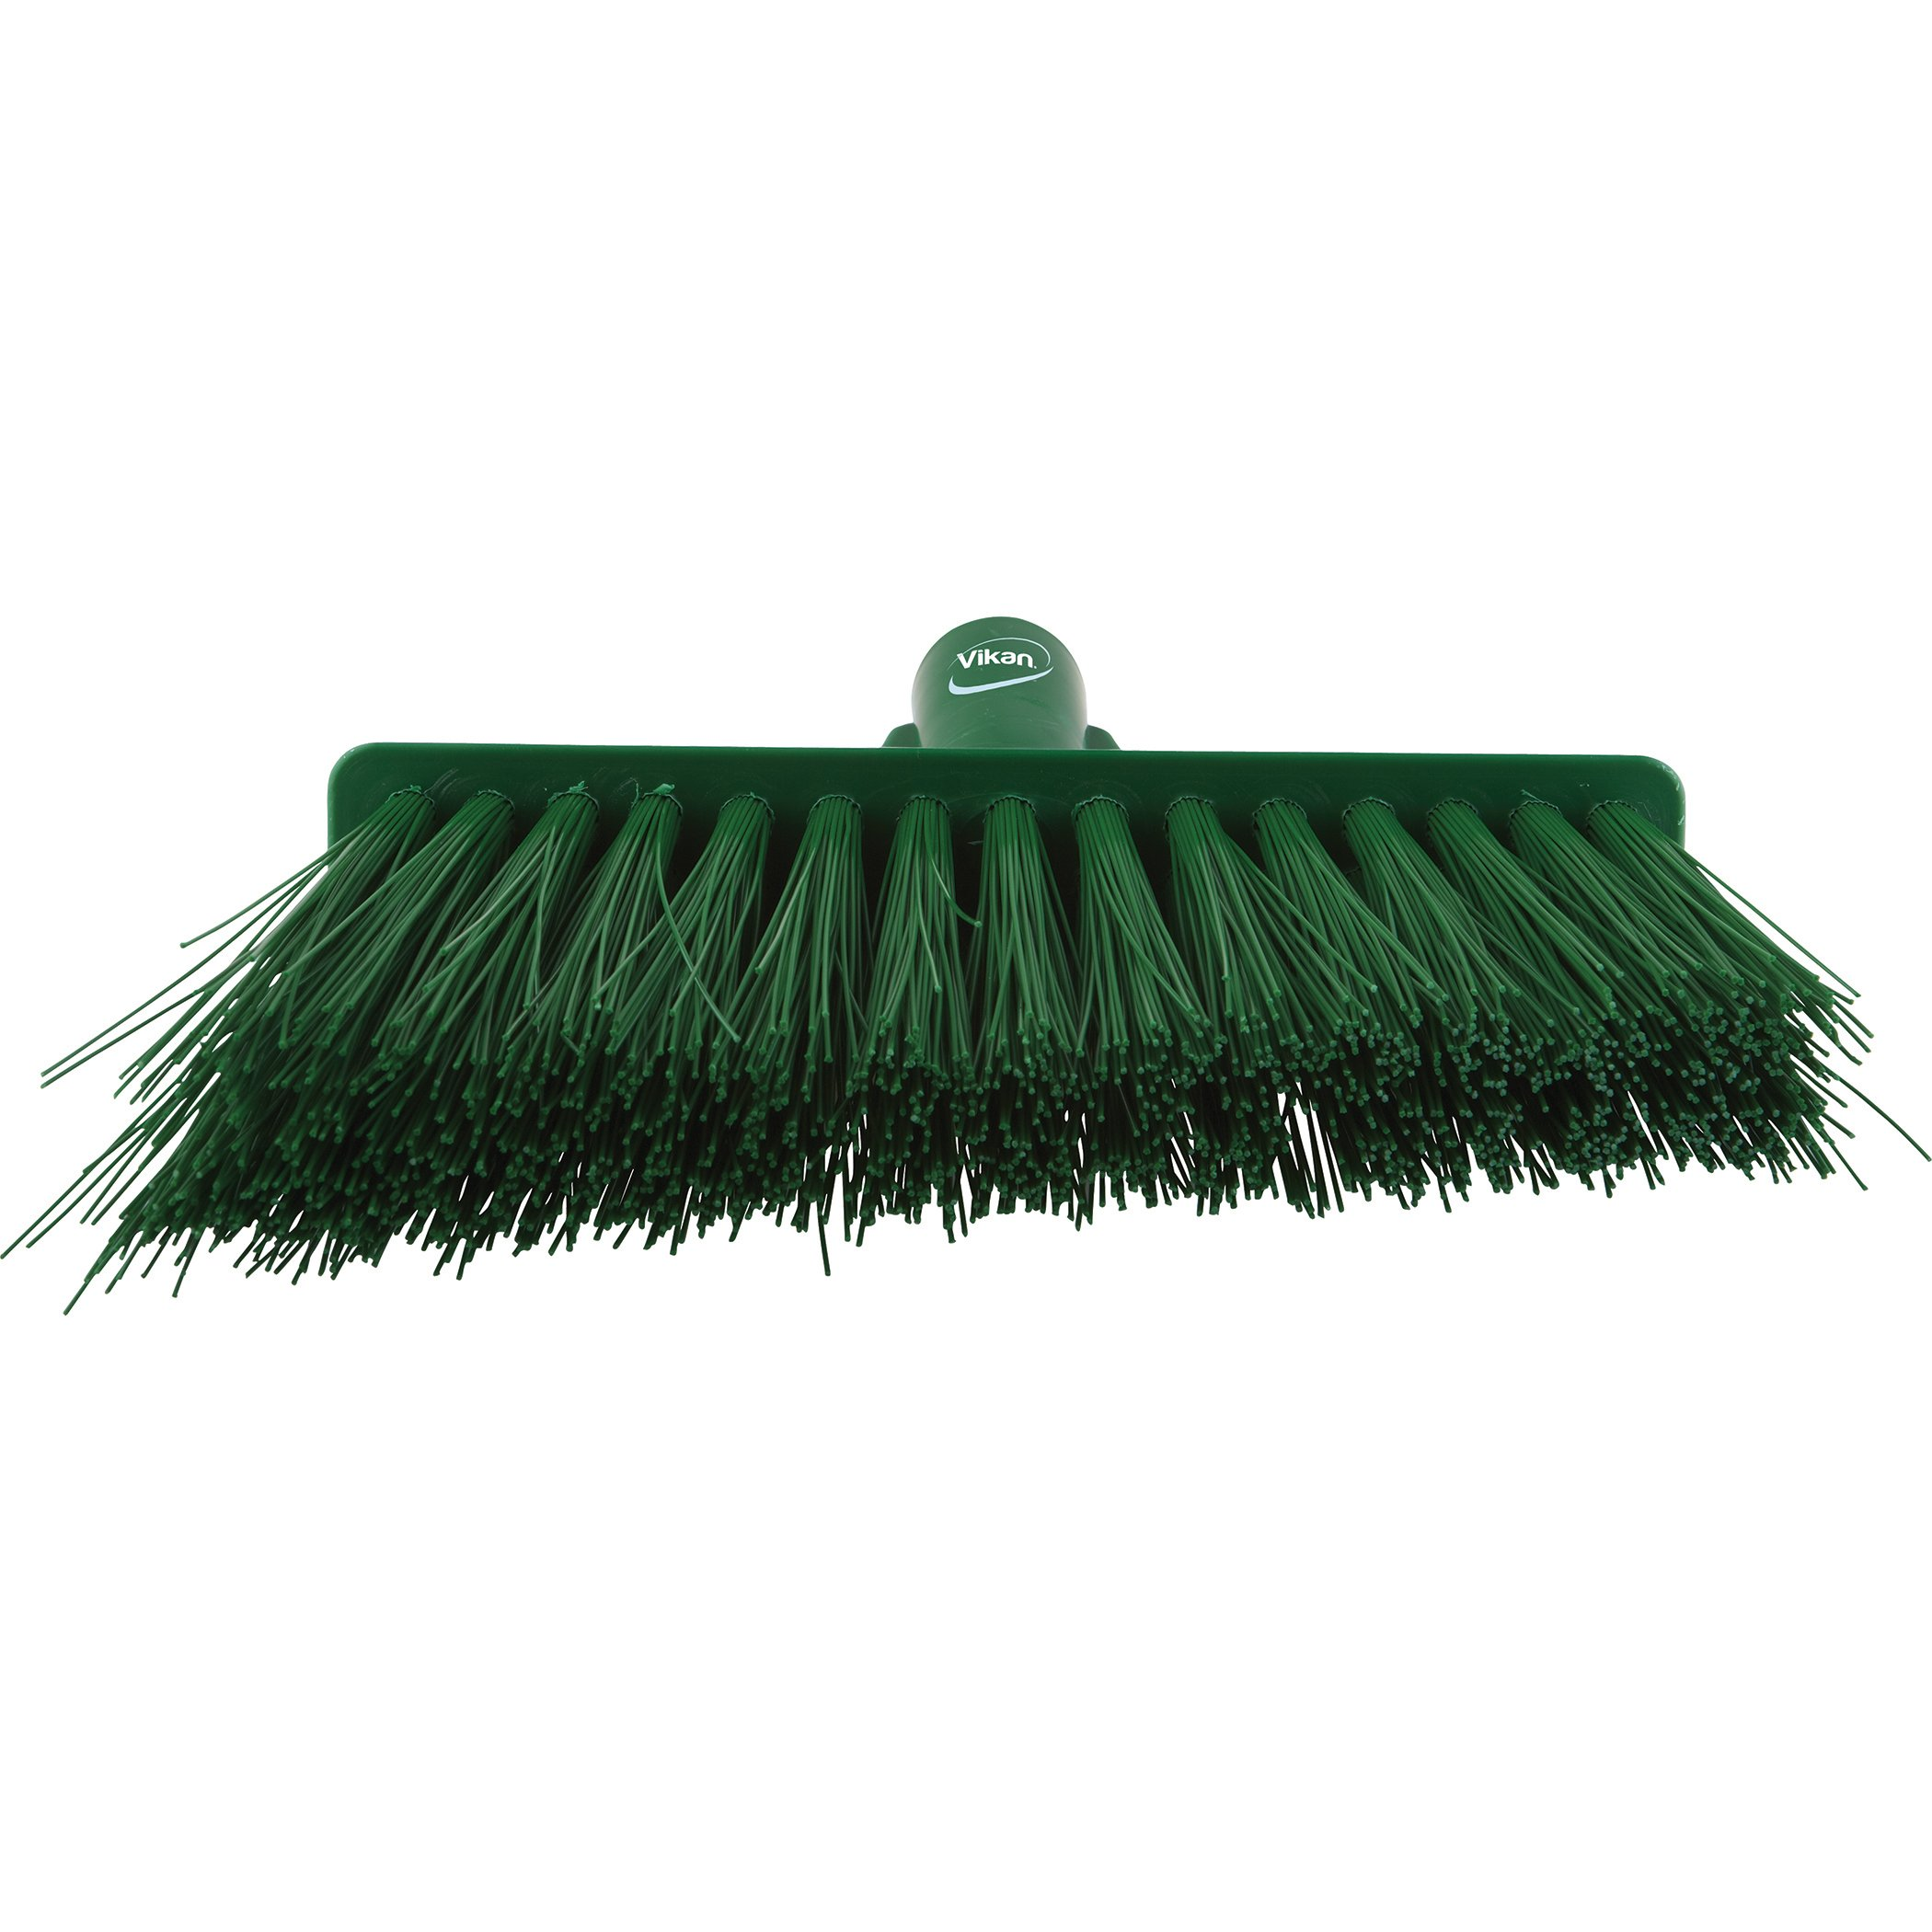 Vikan 29142 Heavy Duty Sweep Floor Broom Head, PET Bristle, Polypropylene Block, 11'', Green